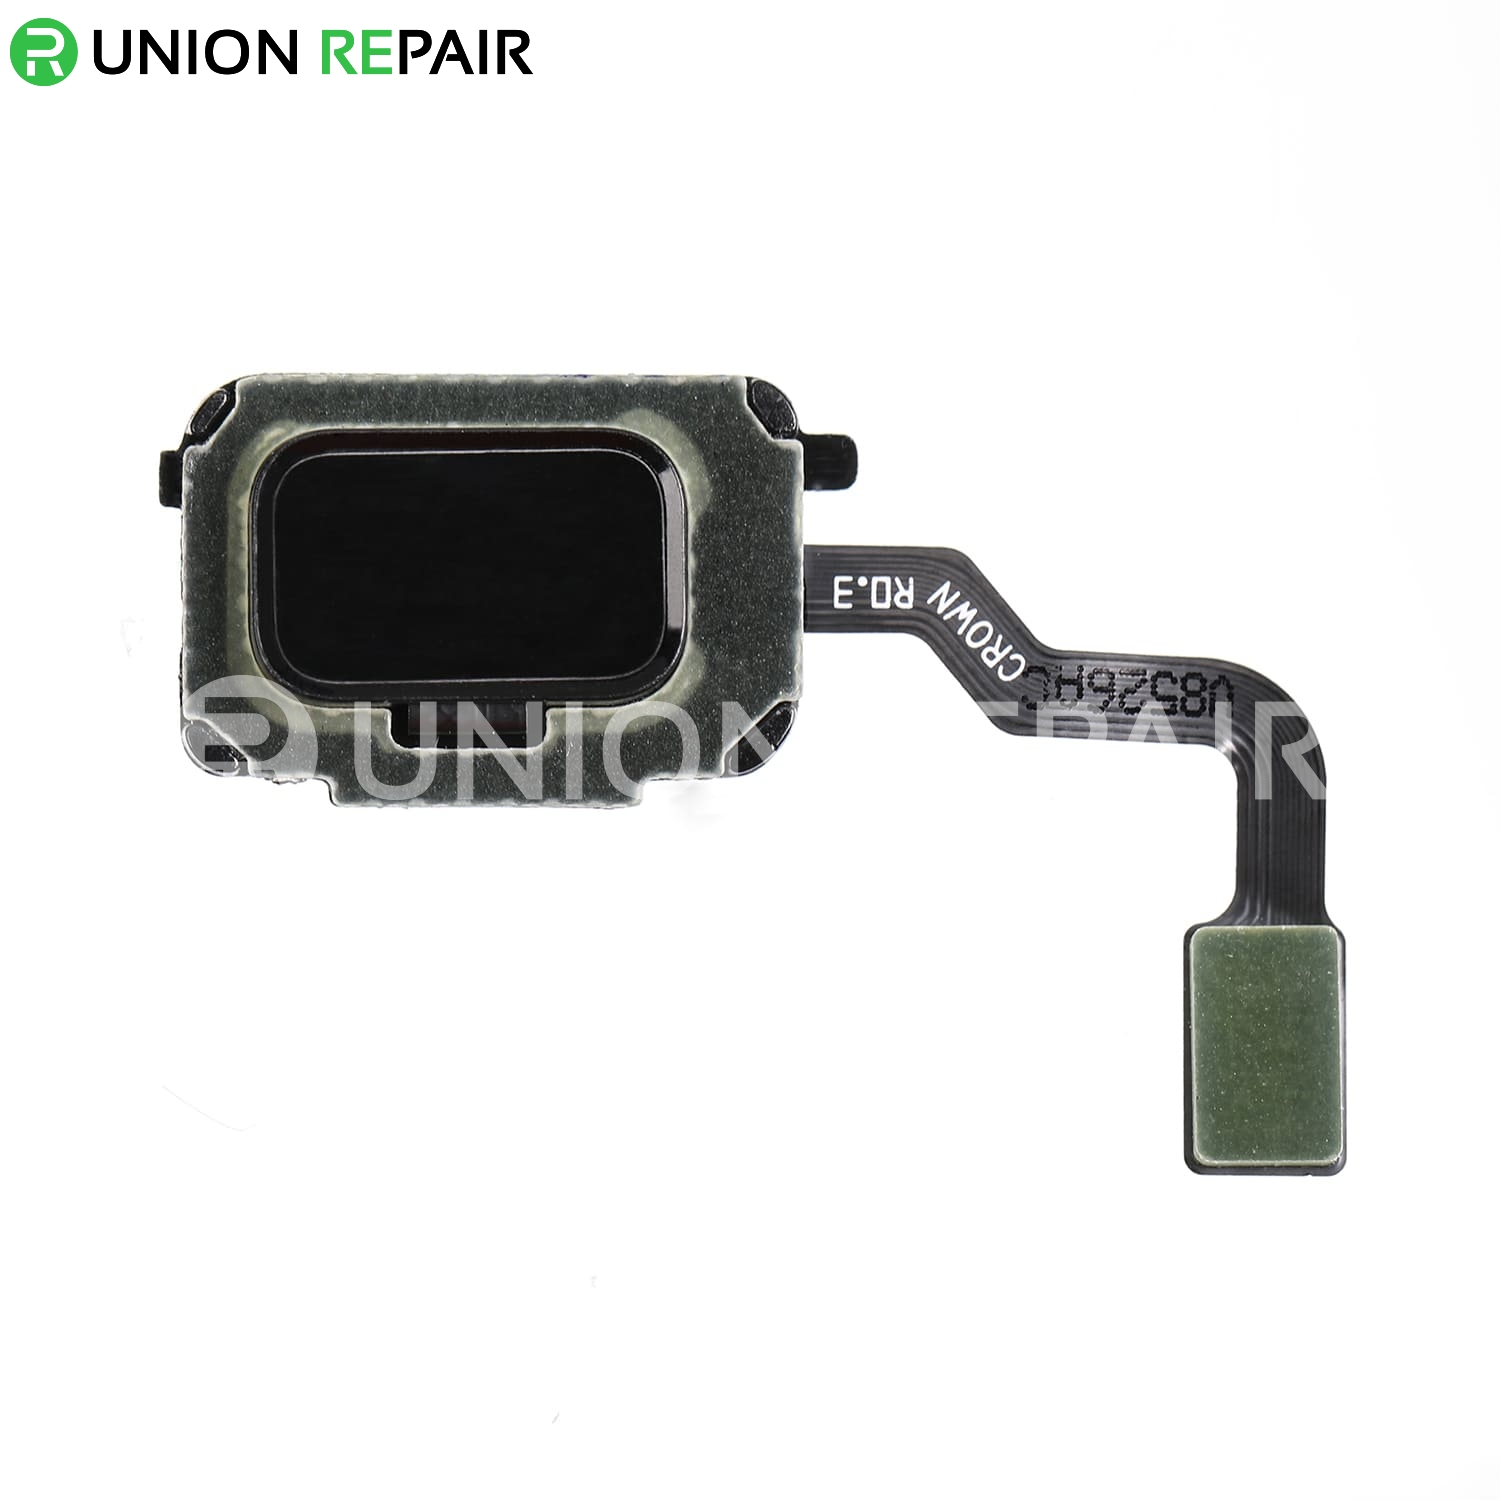 Replacement for Samsung Galaxy Note 9 SM-N960 Home Button Flex Cable - Black